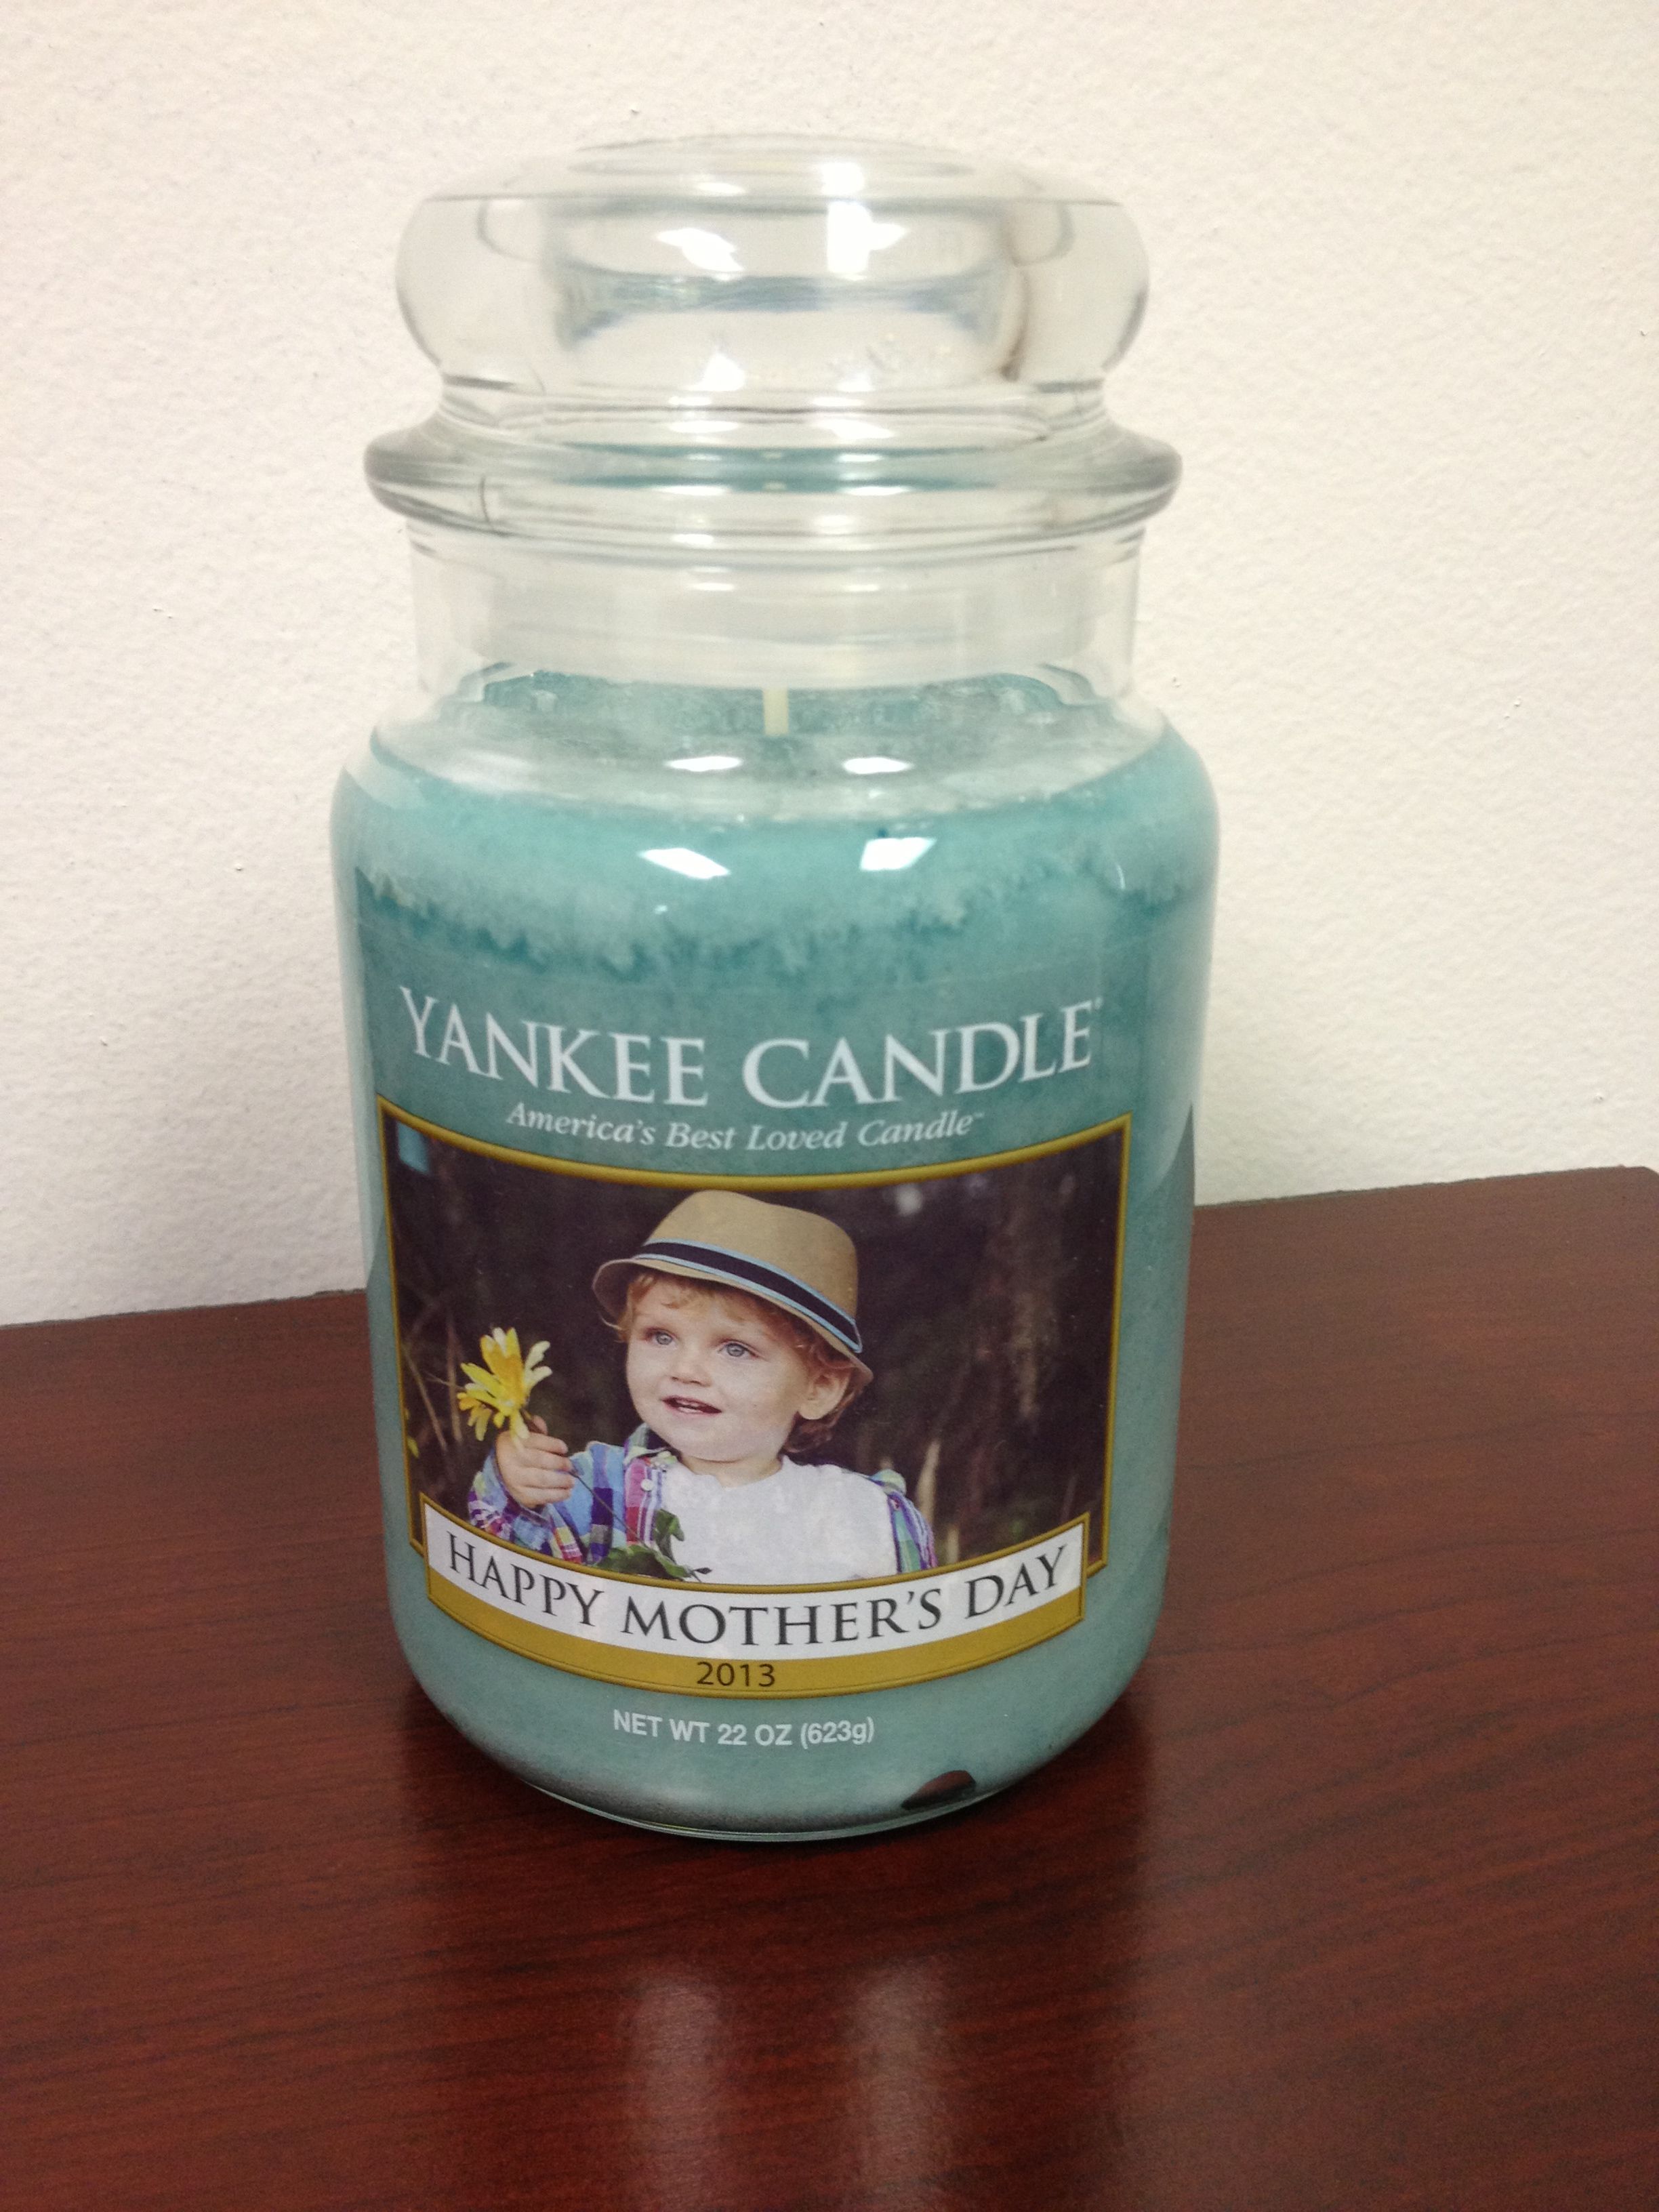 mother 39 s day gift custom candle from yankee candle. Black Bedroom Furniture Sets. Home Design Ideas